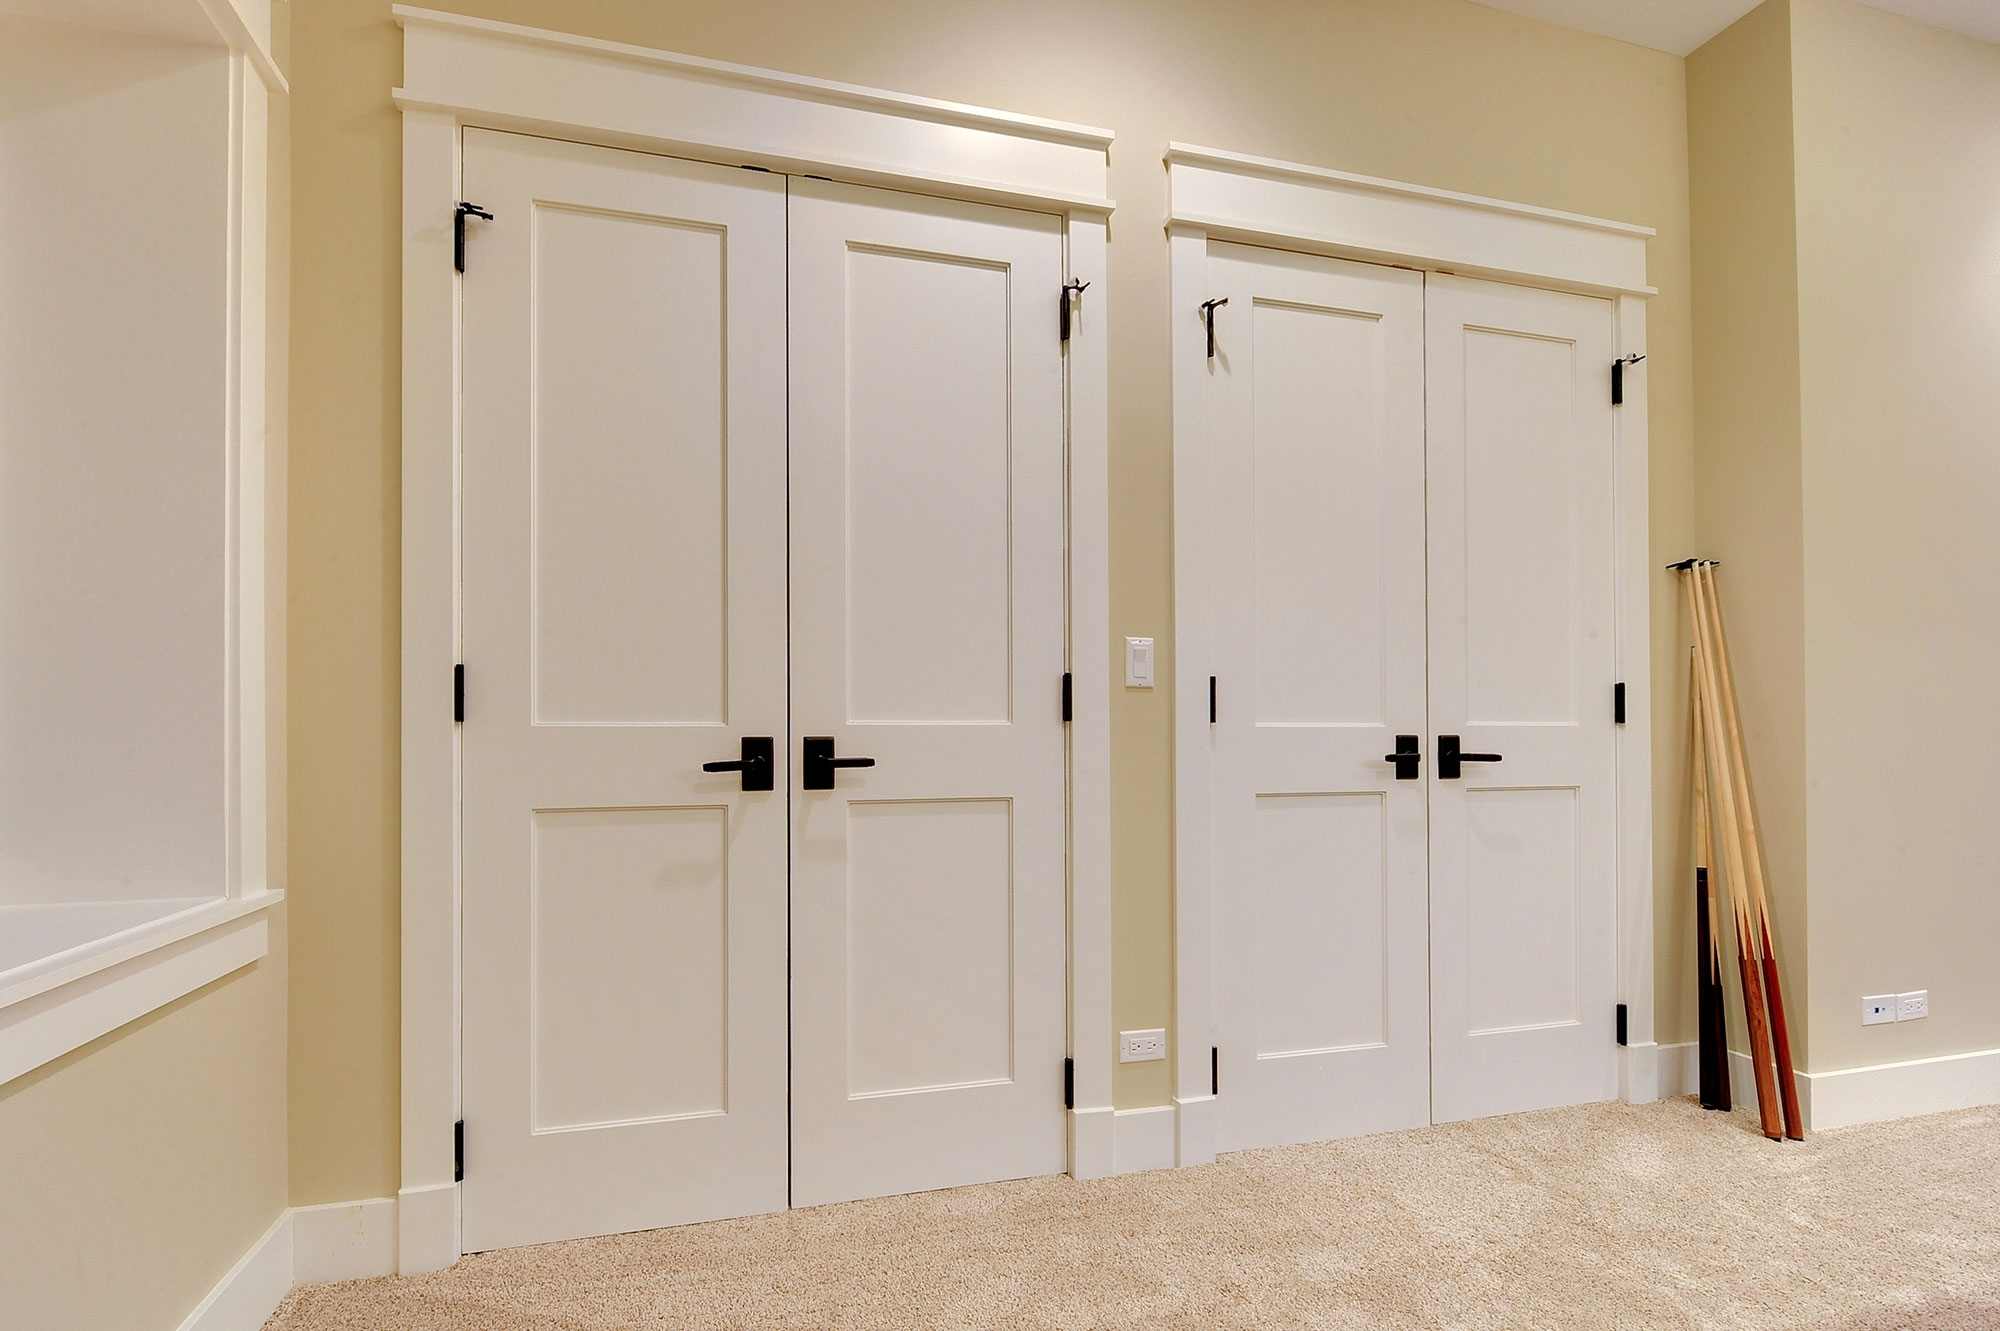 Different Options For Closet Doors